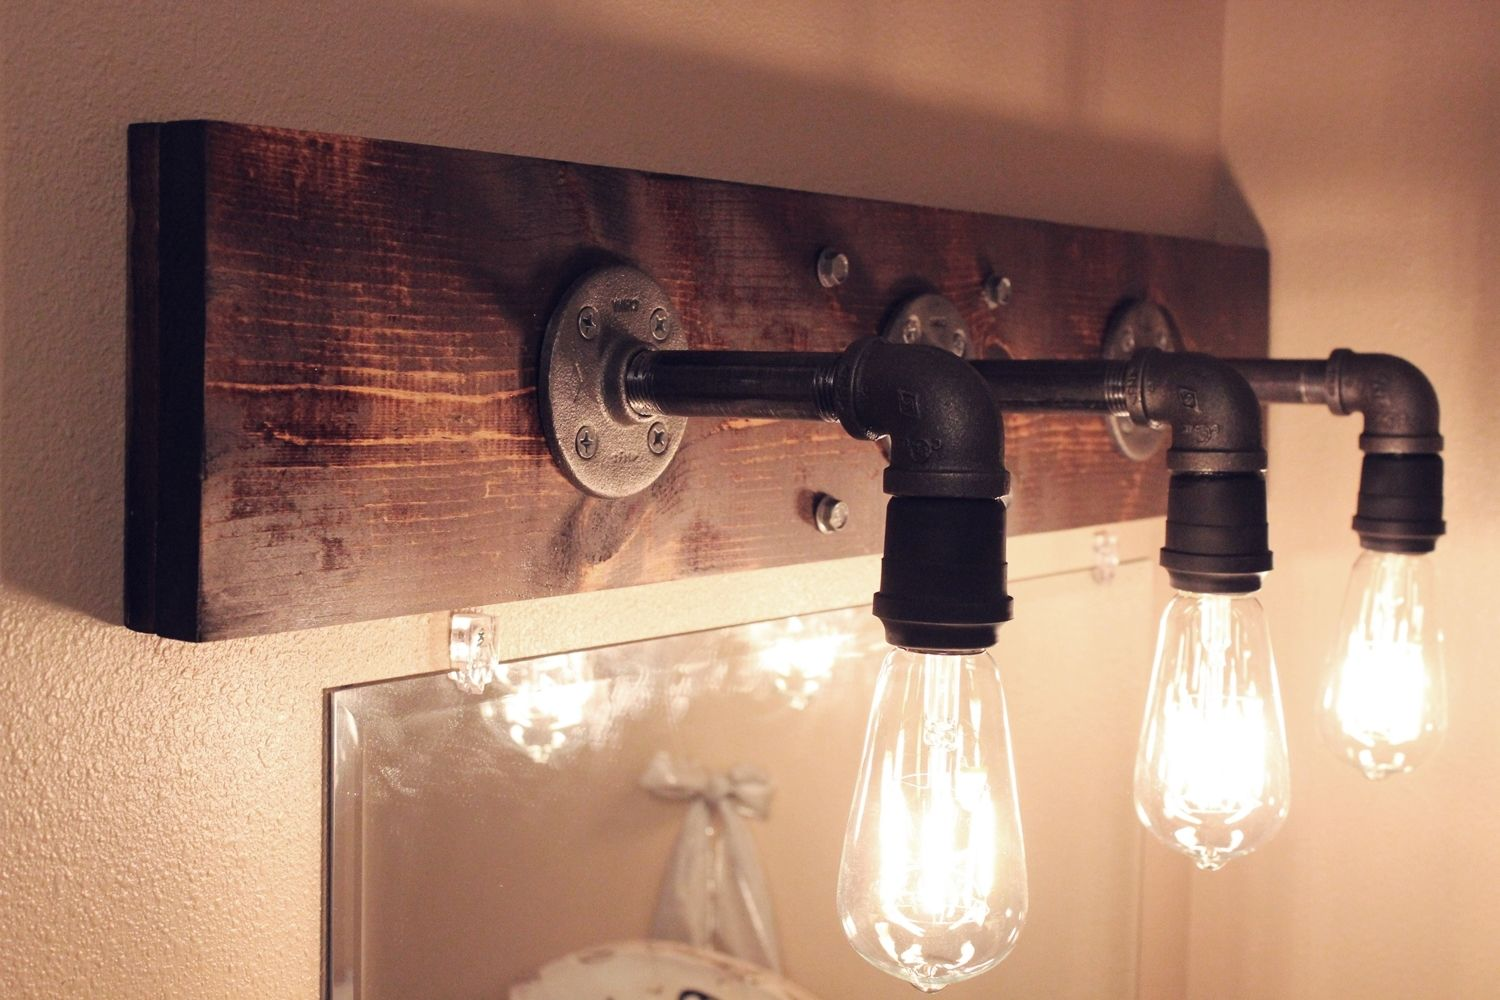 DIY Industrial Bathroom Light Fixtures - Wood bathroom light fixtures